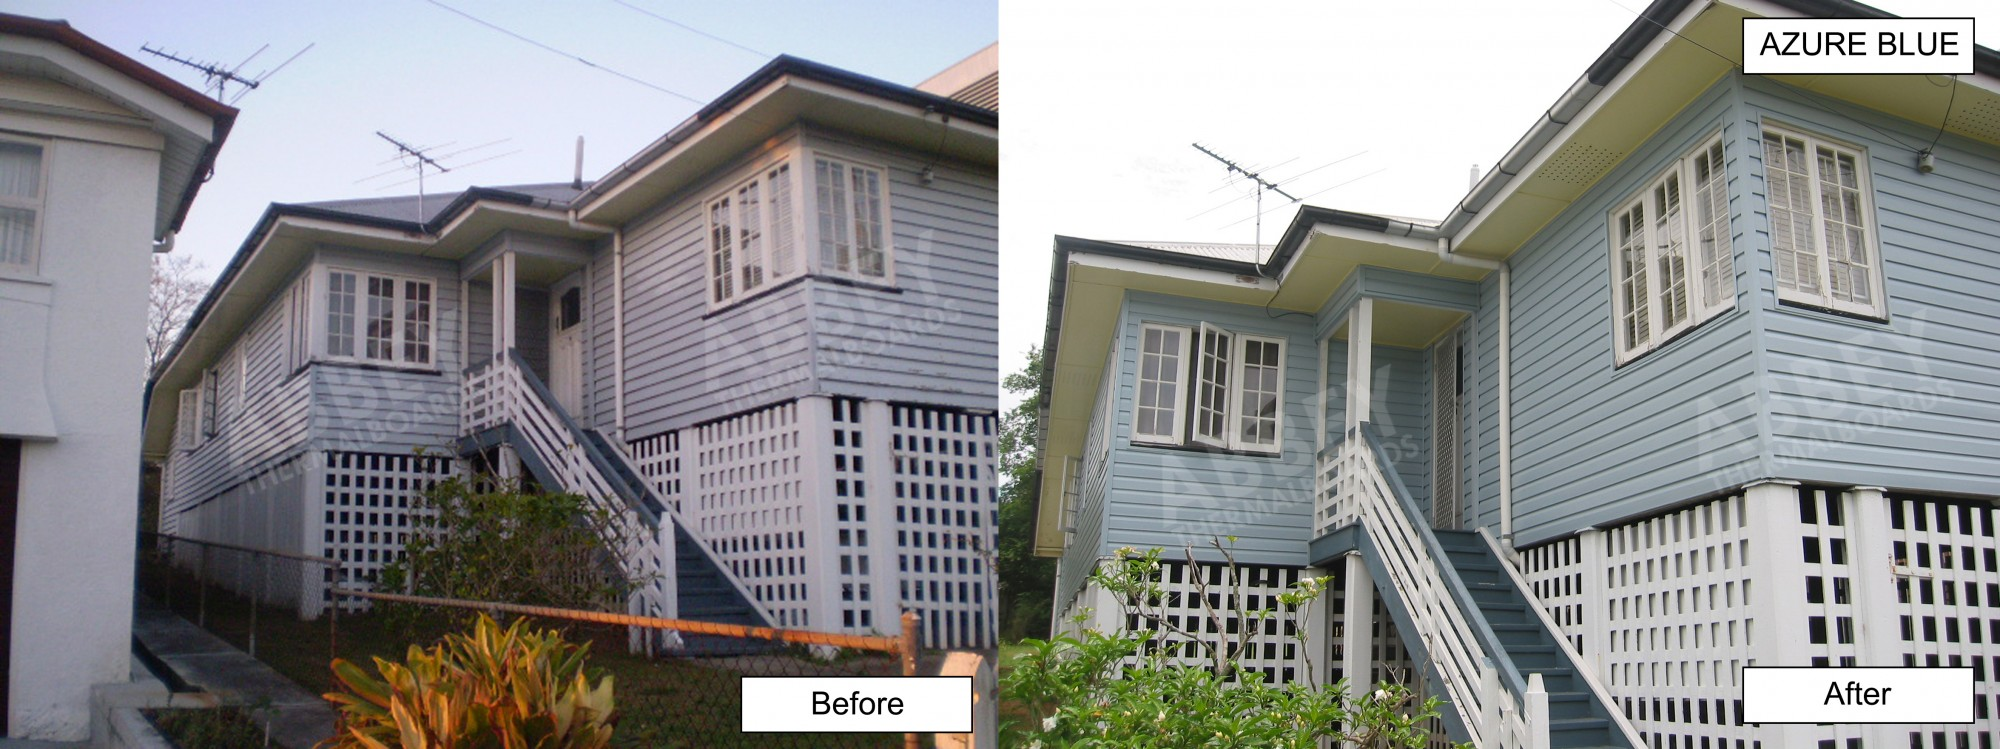 A before and after of house cladding done in Ipswich.